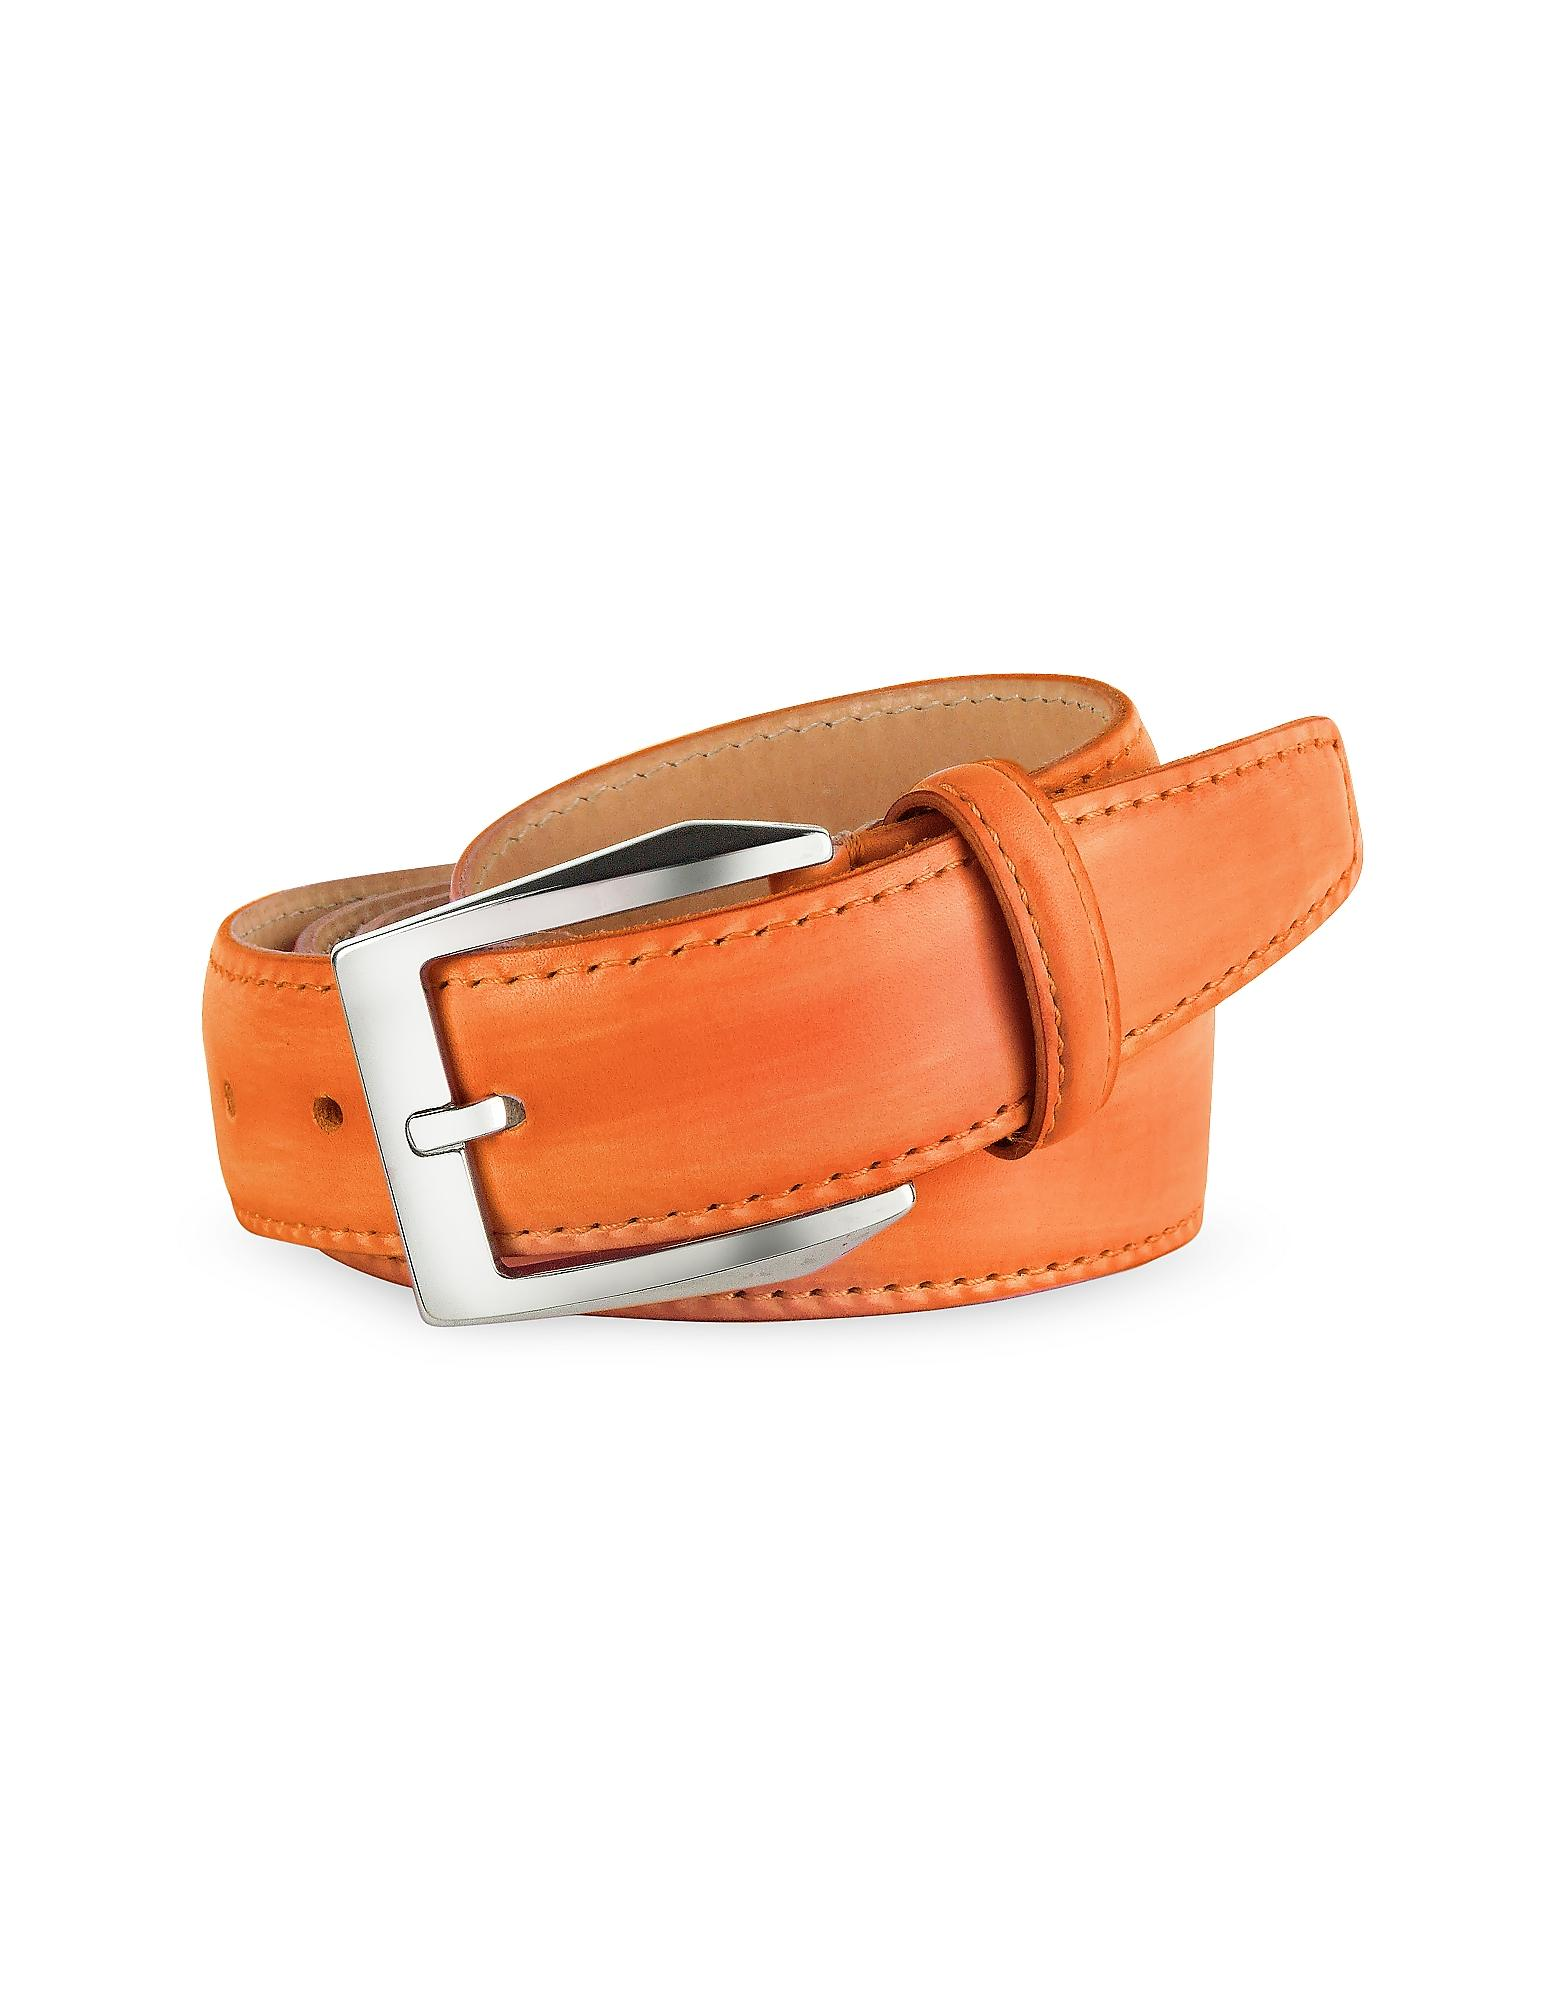 Custom Painted Leather Belts